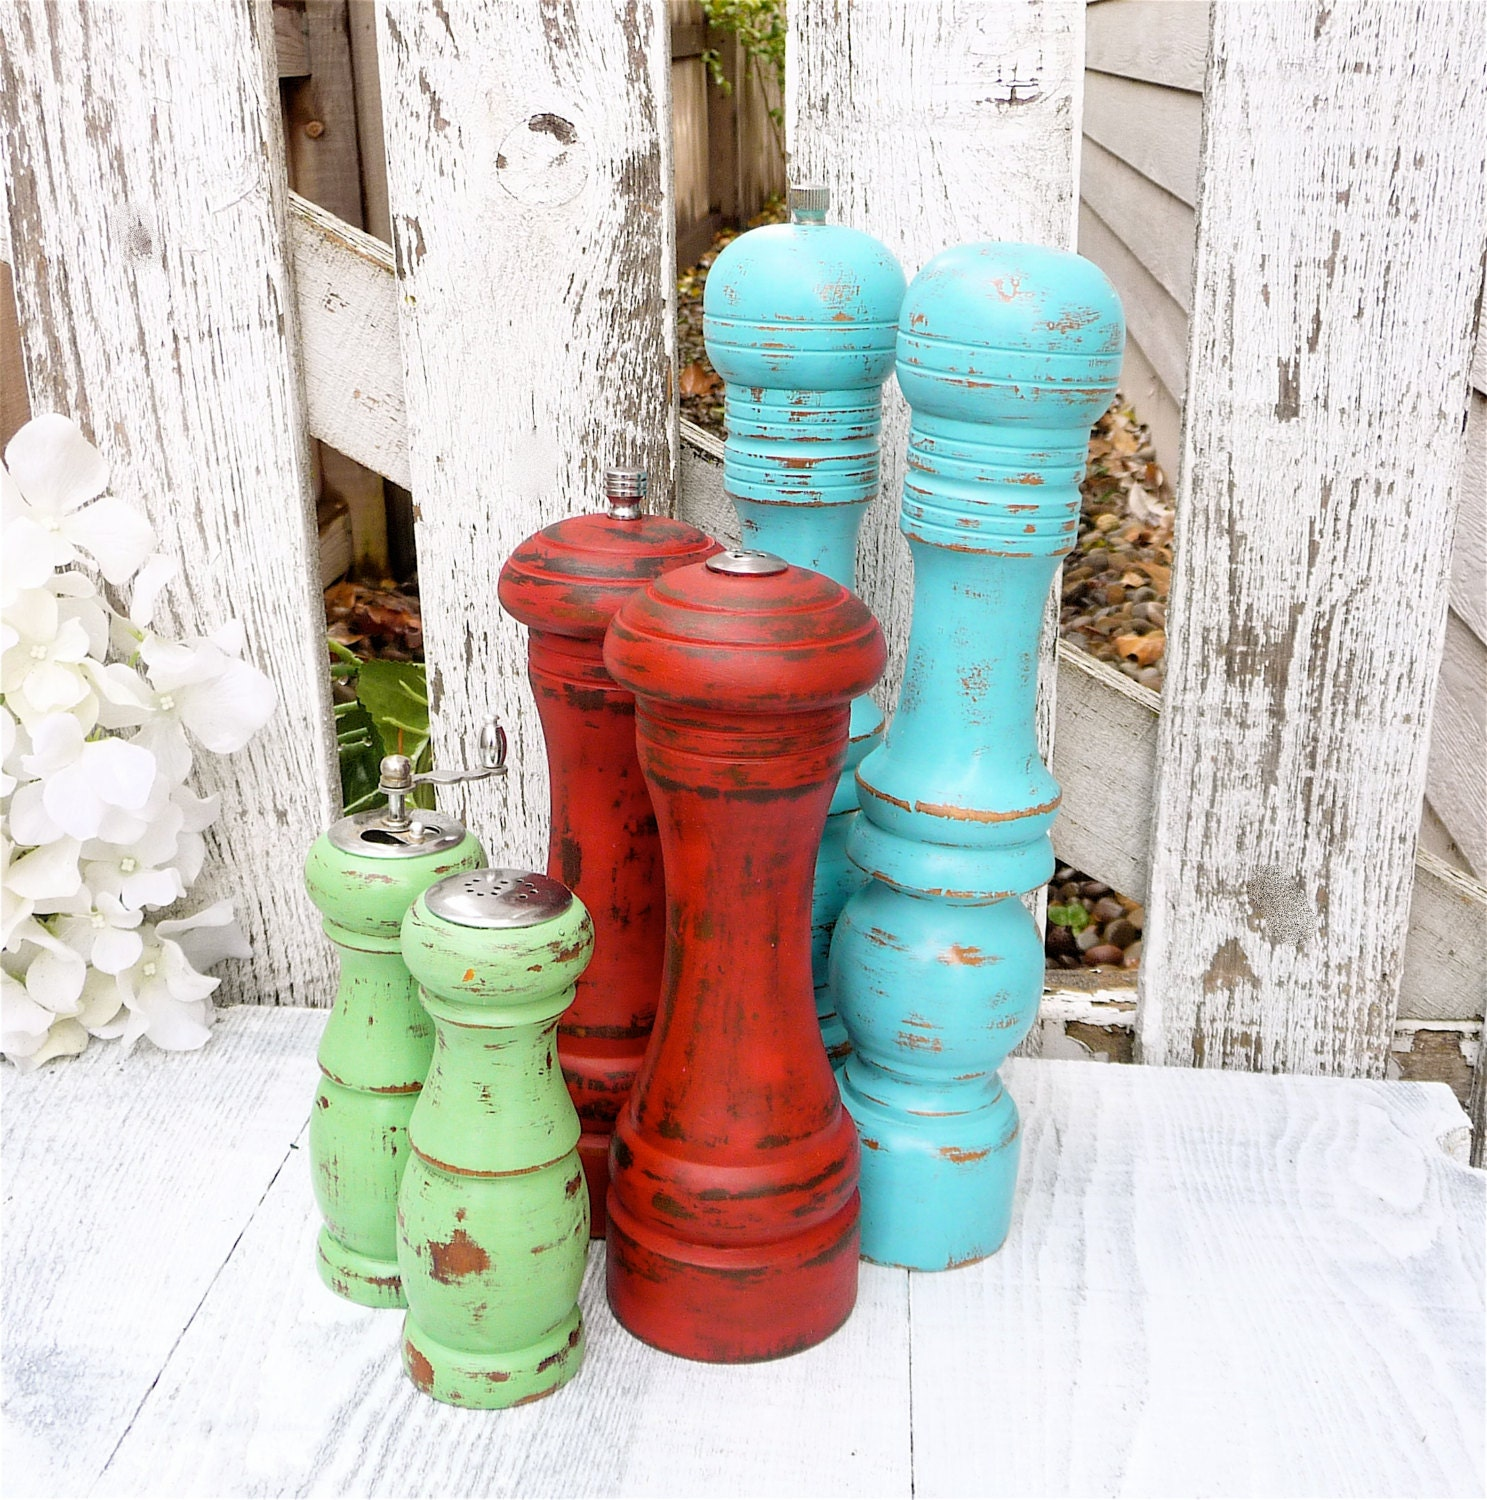 Shabby Chic Salt and Pepper Mill Tall Turquoise Set